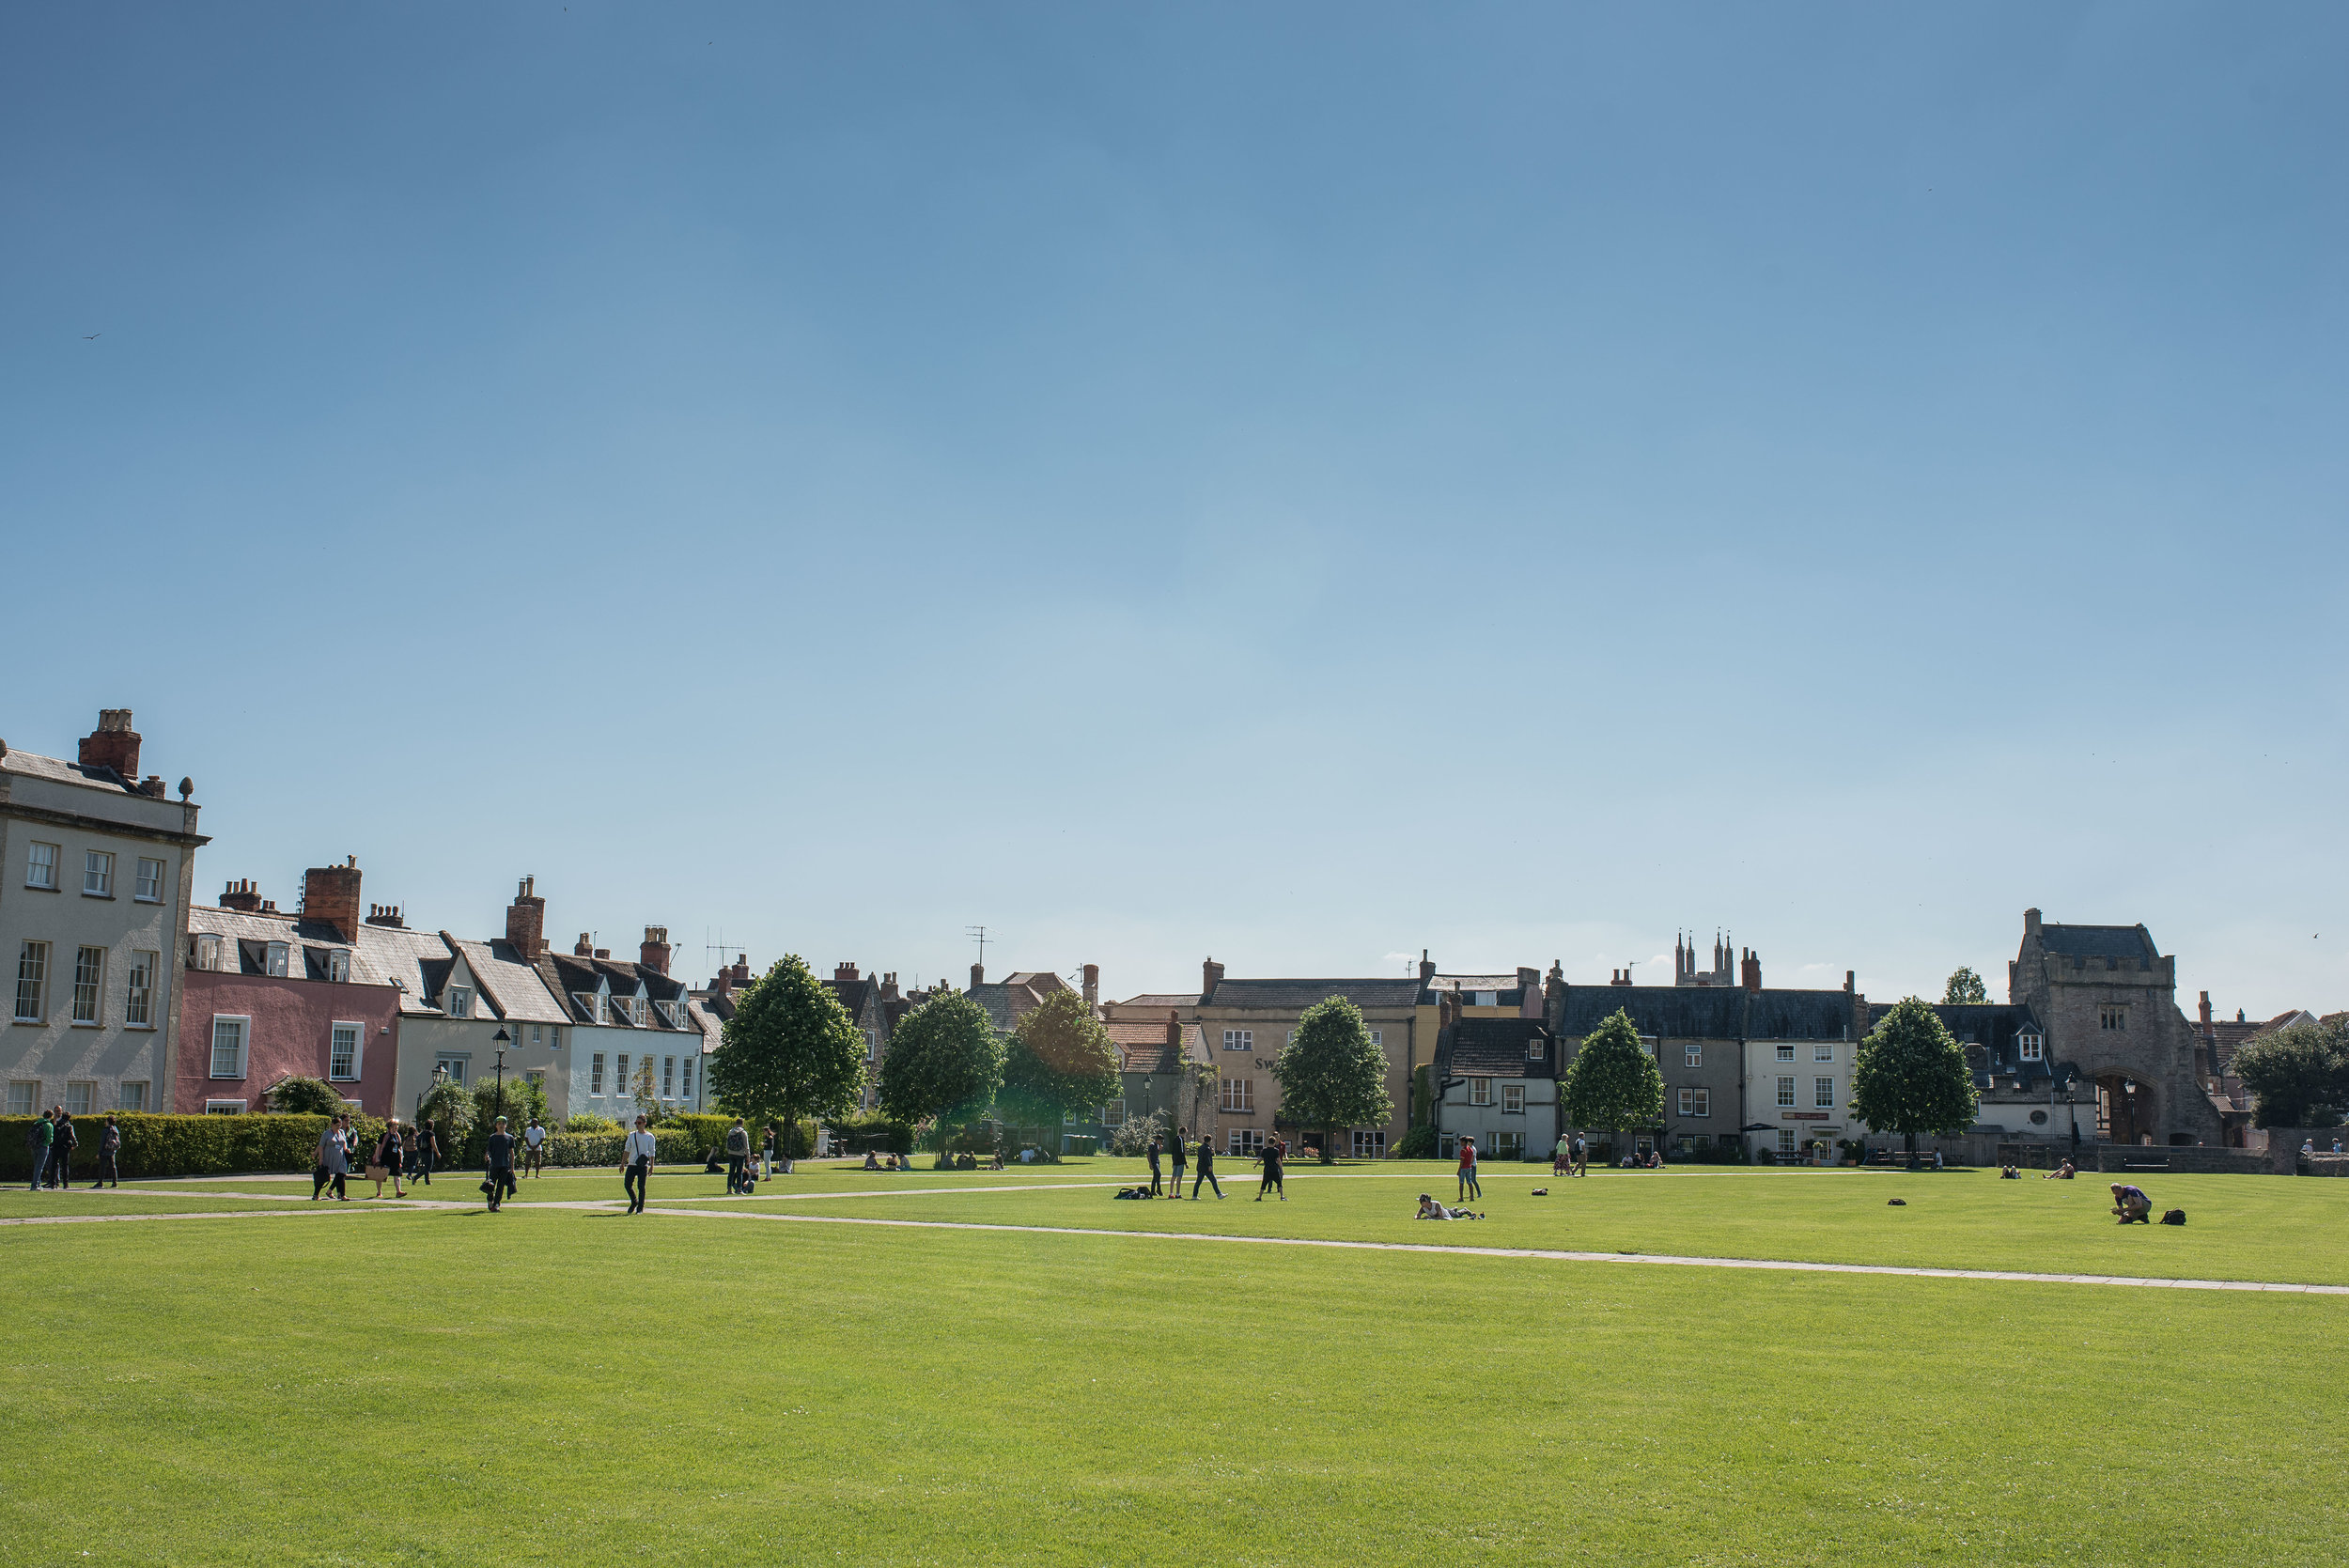 What I would call a quad, surrounding the cathedral. It was a popular spot for kids just out of school that afternoon.